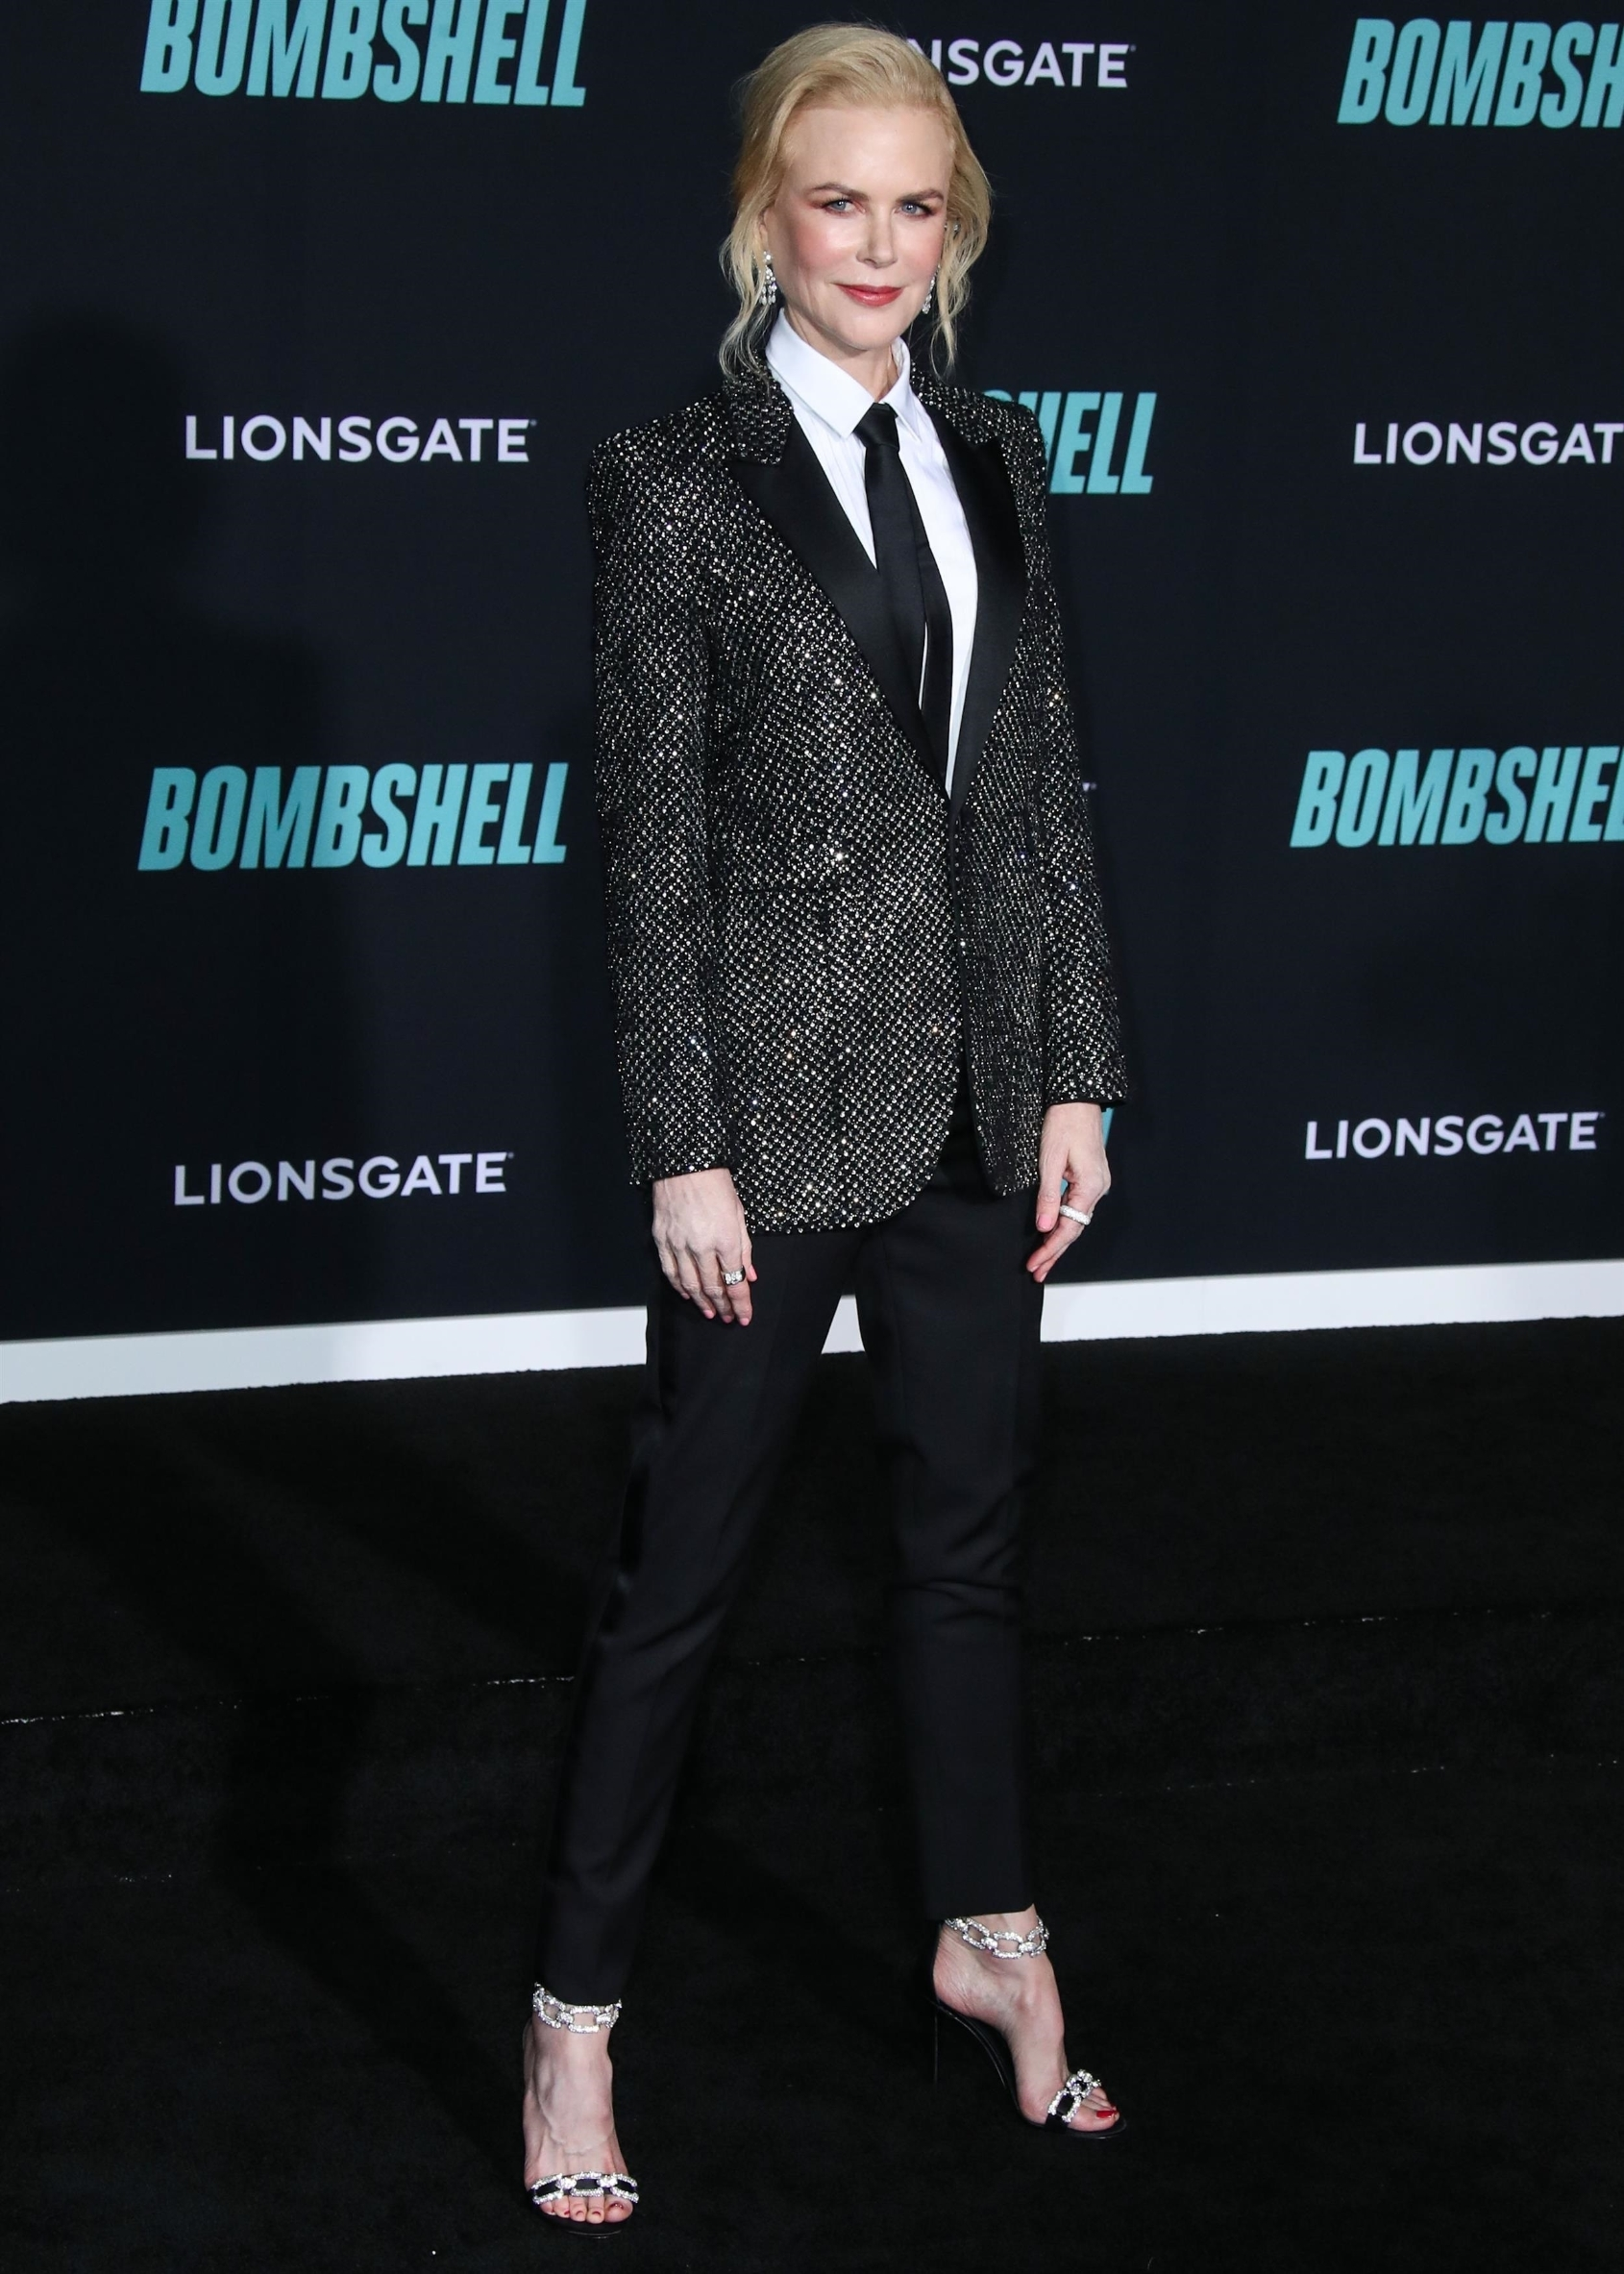 Westwood, CA  - Los Angeles Special Screening Of Liongate's 'Bombshell' held at the Regency Village Theatre.  BACKGRID USA 10 DECEMBER 2019, Image: 487529499, License: Rights-managed, Restrictions: , Model Release: no, Credit line: Image Press / BACKGRID / Backgrid USA / Profimedia